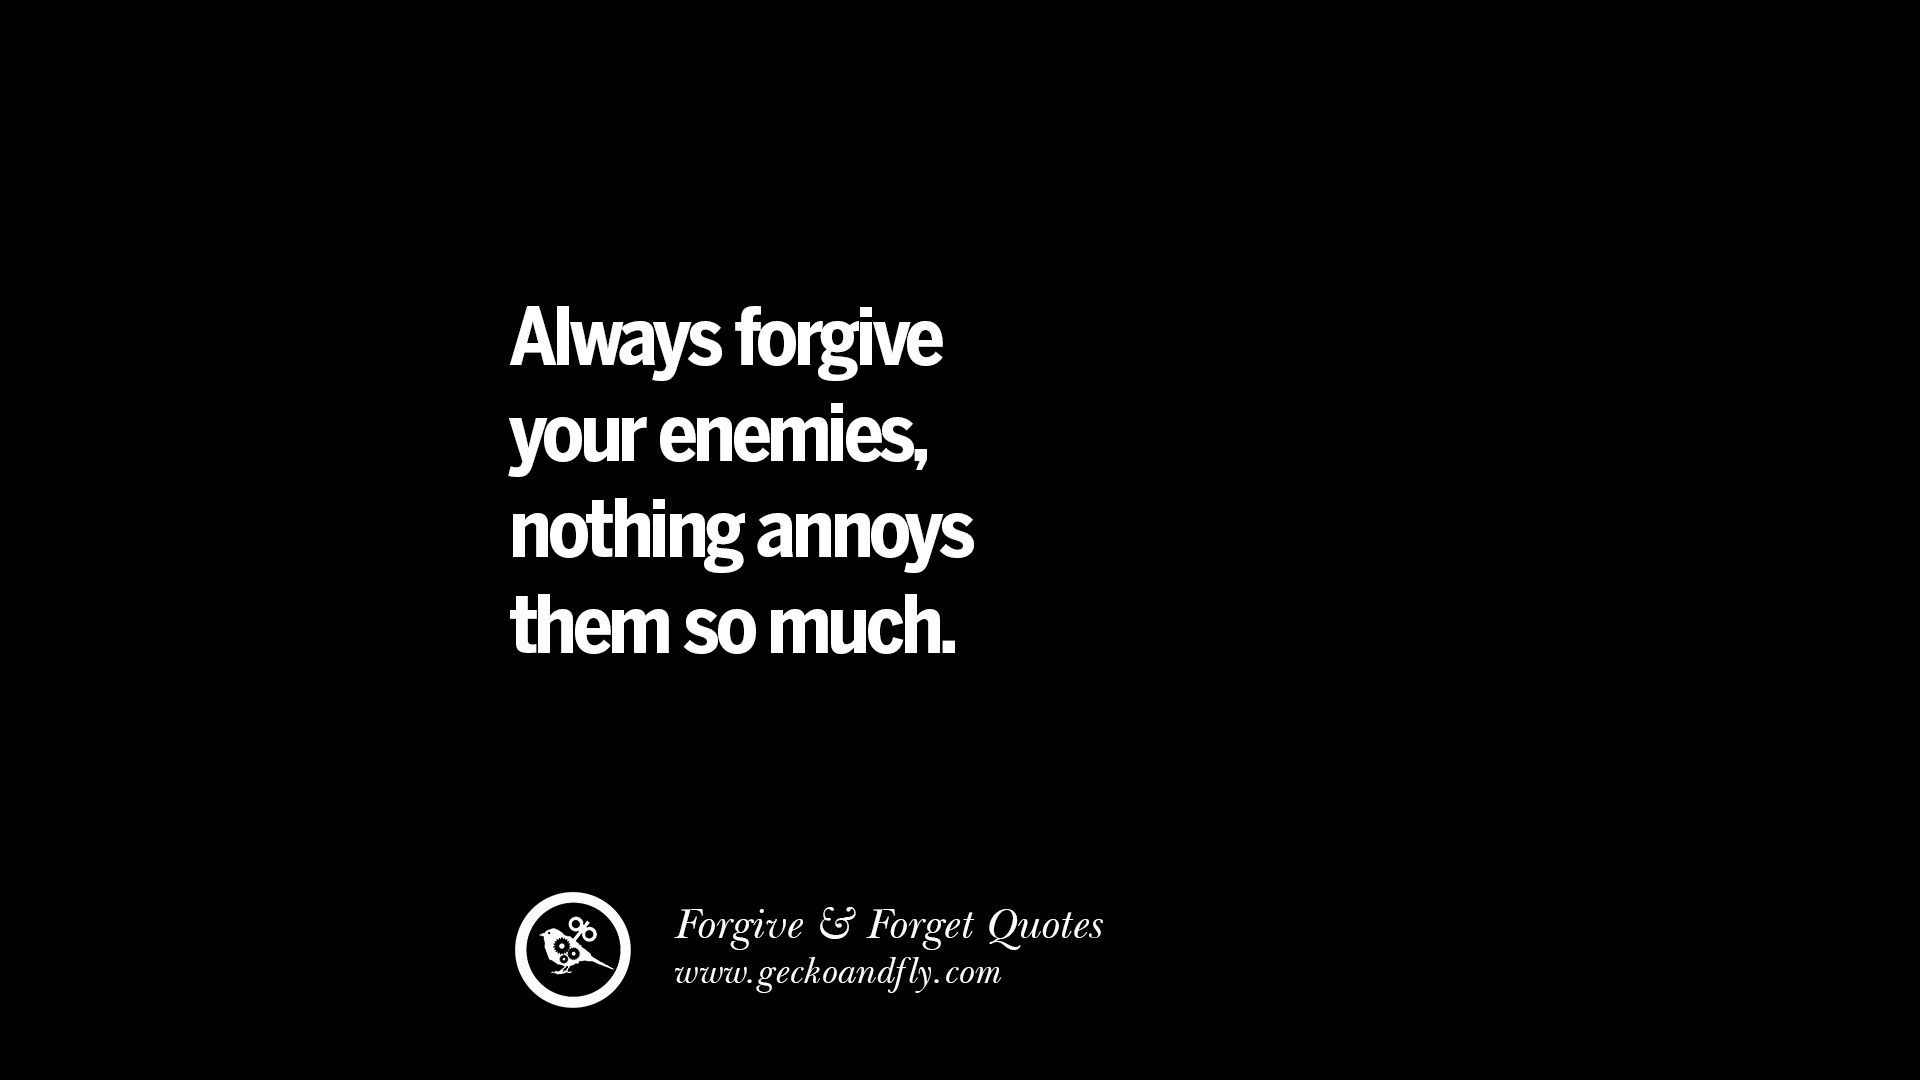 quotes on forgive and forget when someone hurts you in a always forgive your enemies nothing annoys them so much quotes on forgive and forget